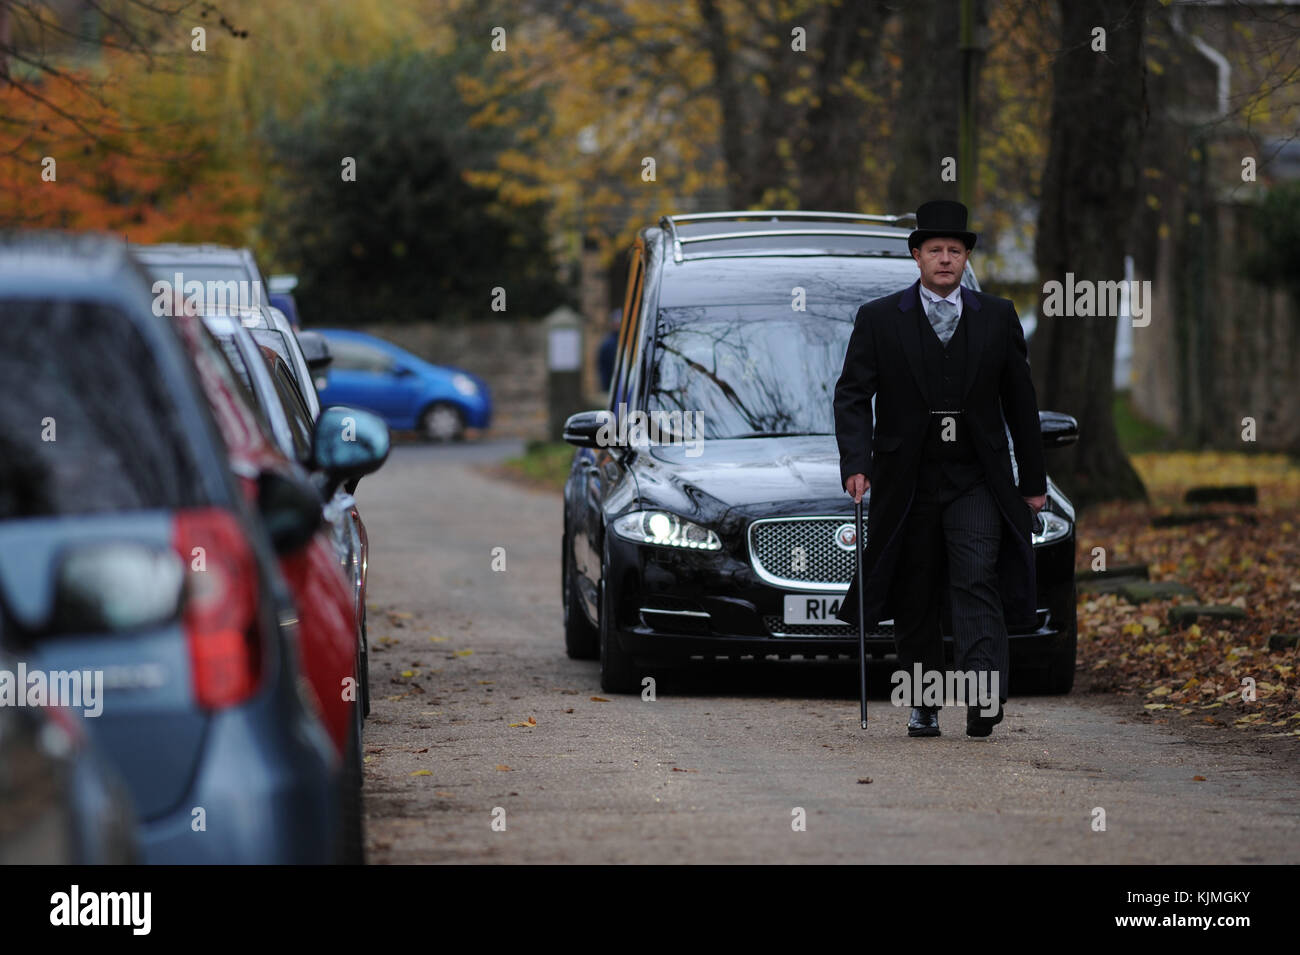 Bobby Knutt funeral at Wentworth Church, near Rotherham, South Yorkshire, UK. Stock Photo